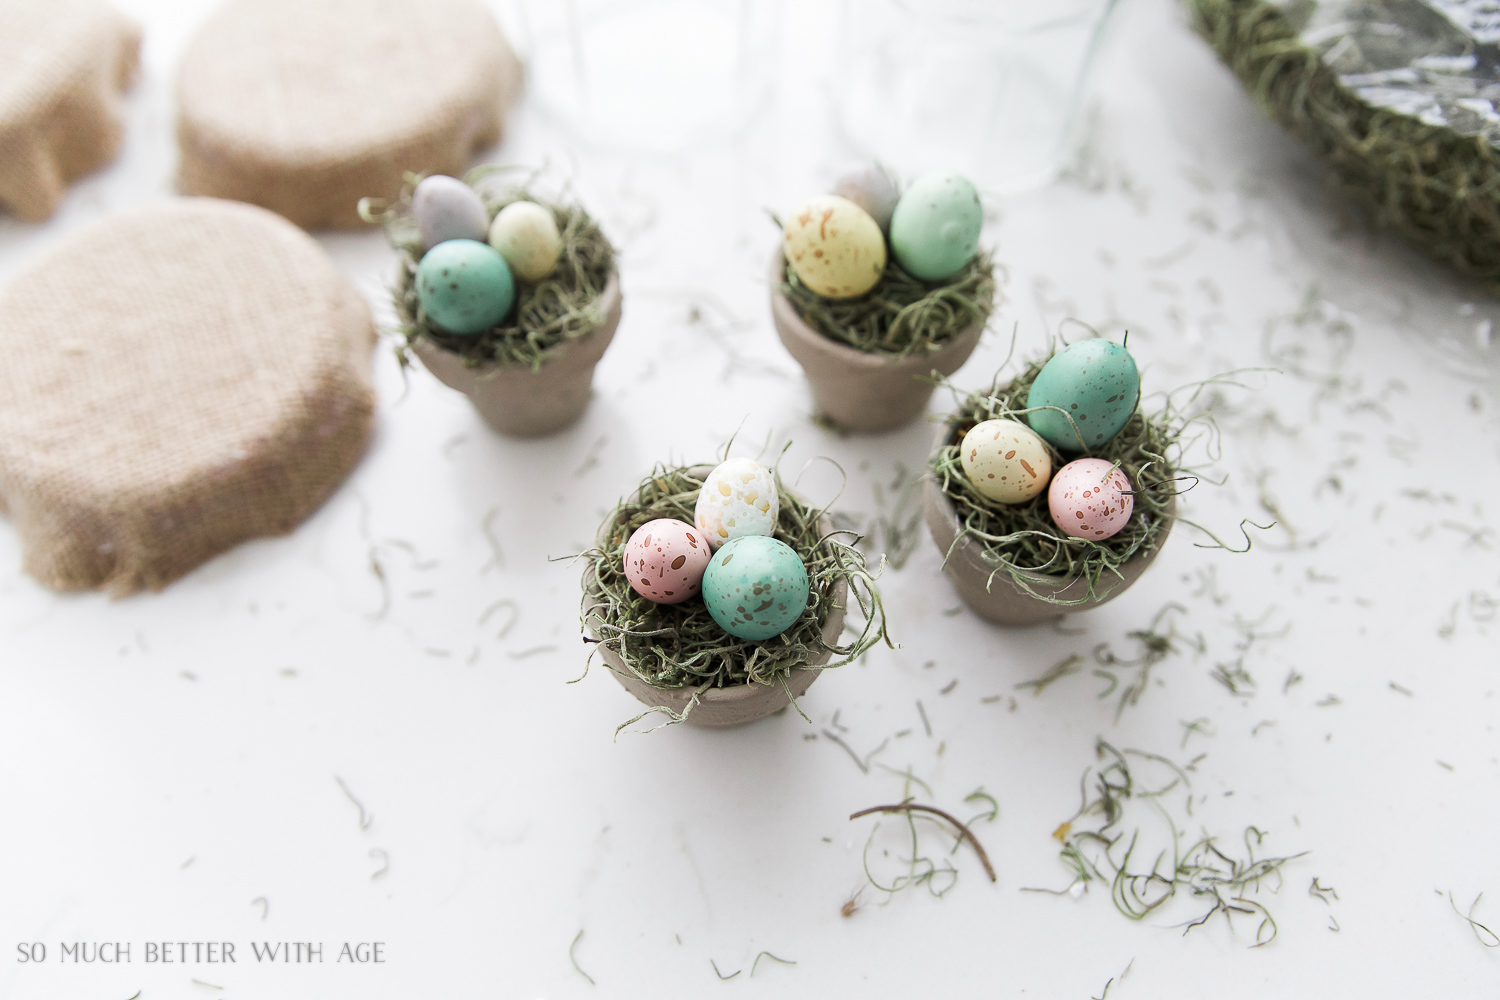 Glass Easter Jars with Bunny Ears / gluing the eggs into the pot - So Much Better With Age